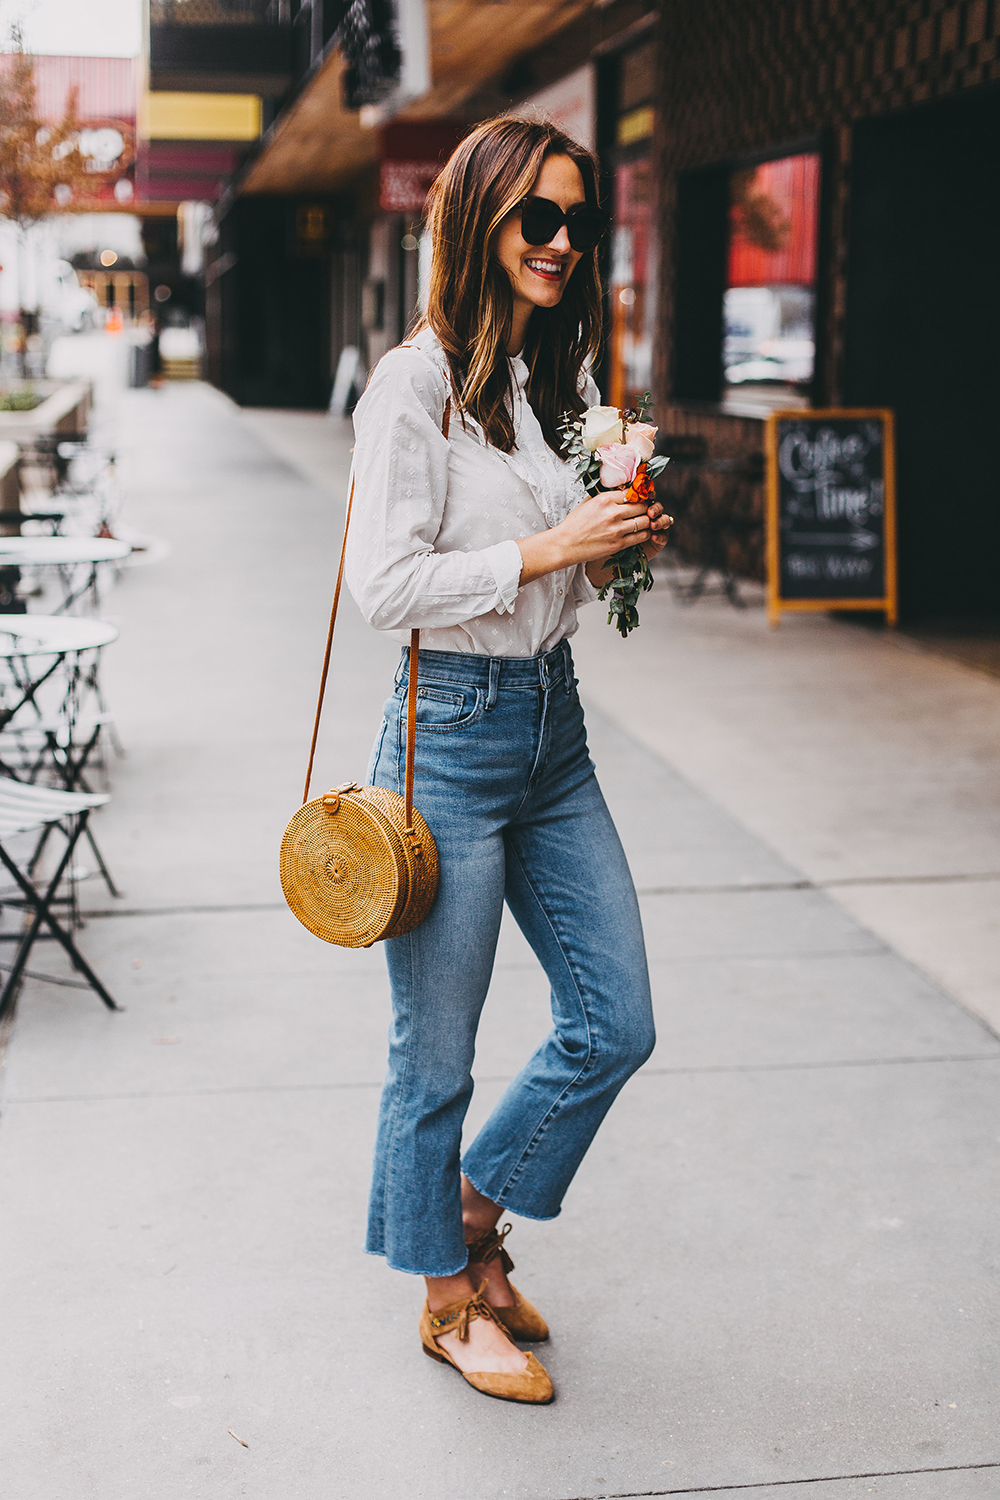 livvyland-blog-olivia-watson-austin-texas-fashion-style-blogger-sezane-white-eyelet-blouse-kick-flare-jeans-simple-spring-outfit-11